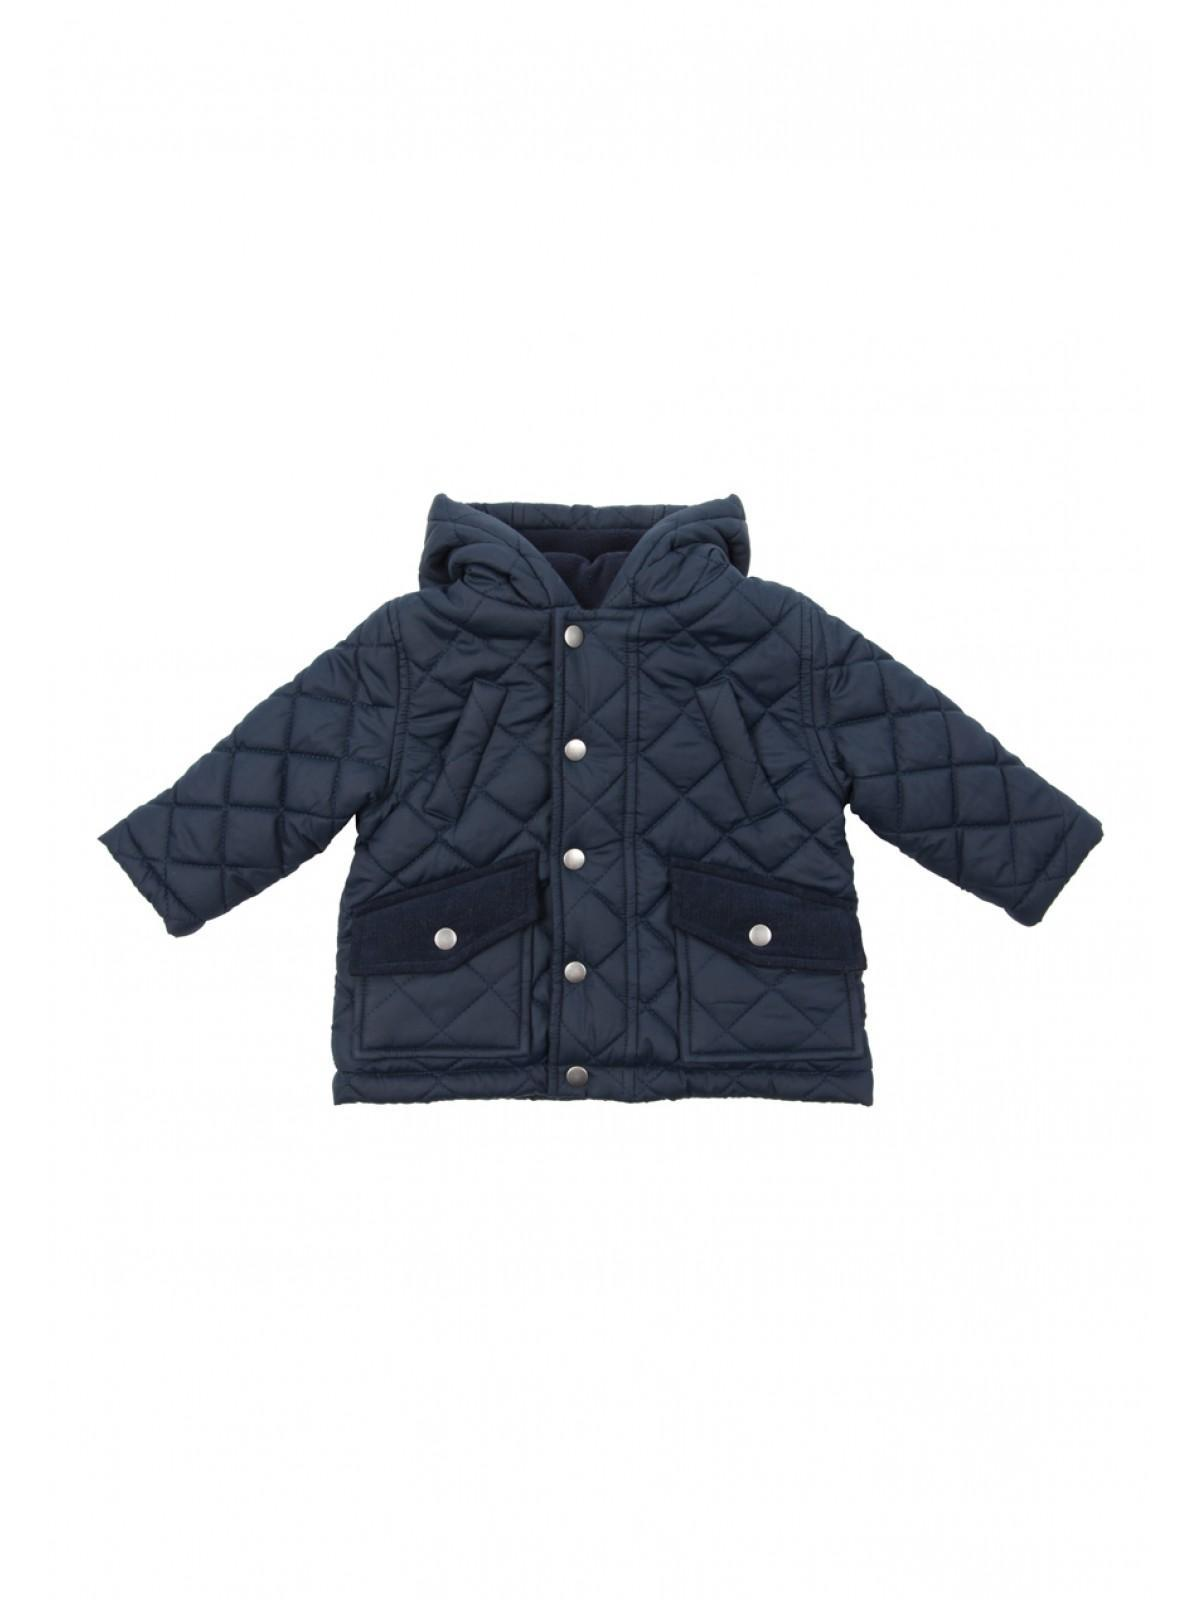 Boys aby Boys Quilted Jacket